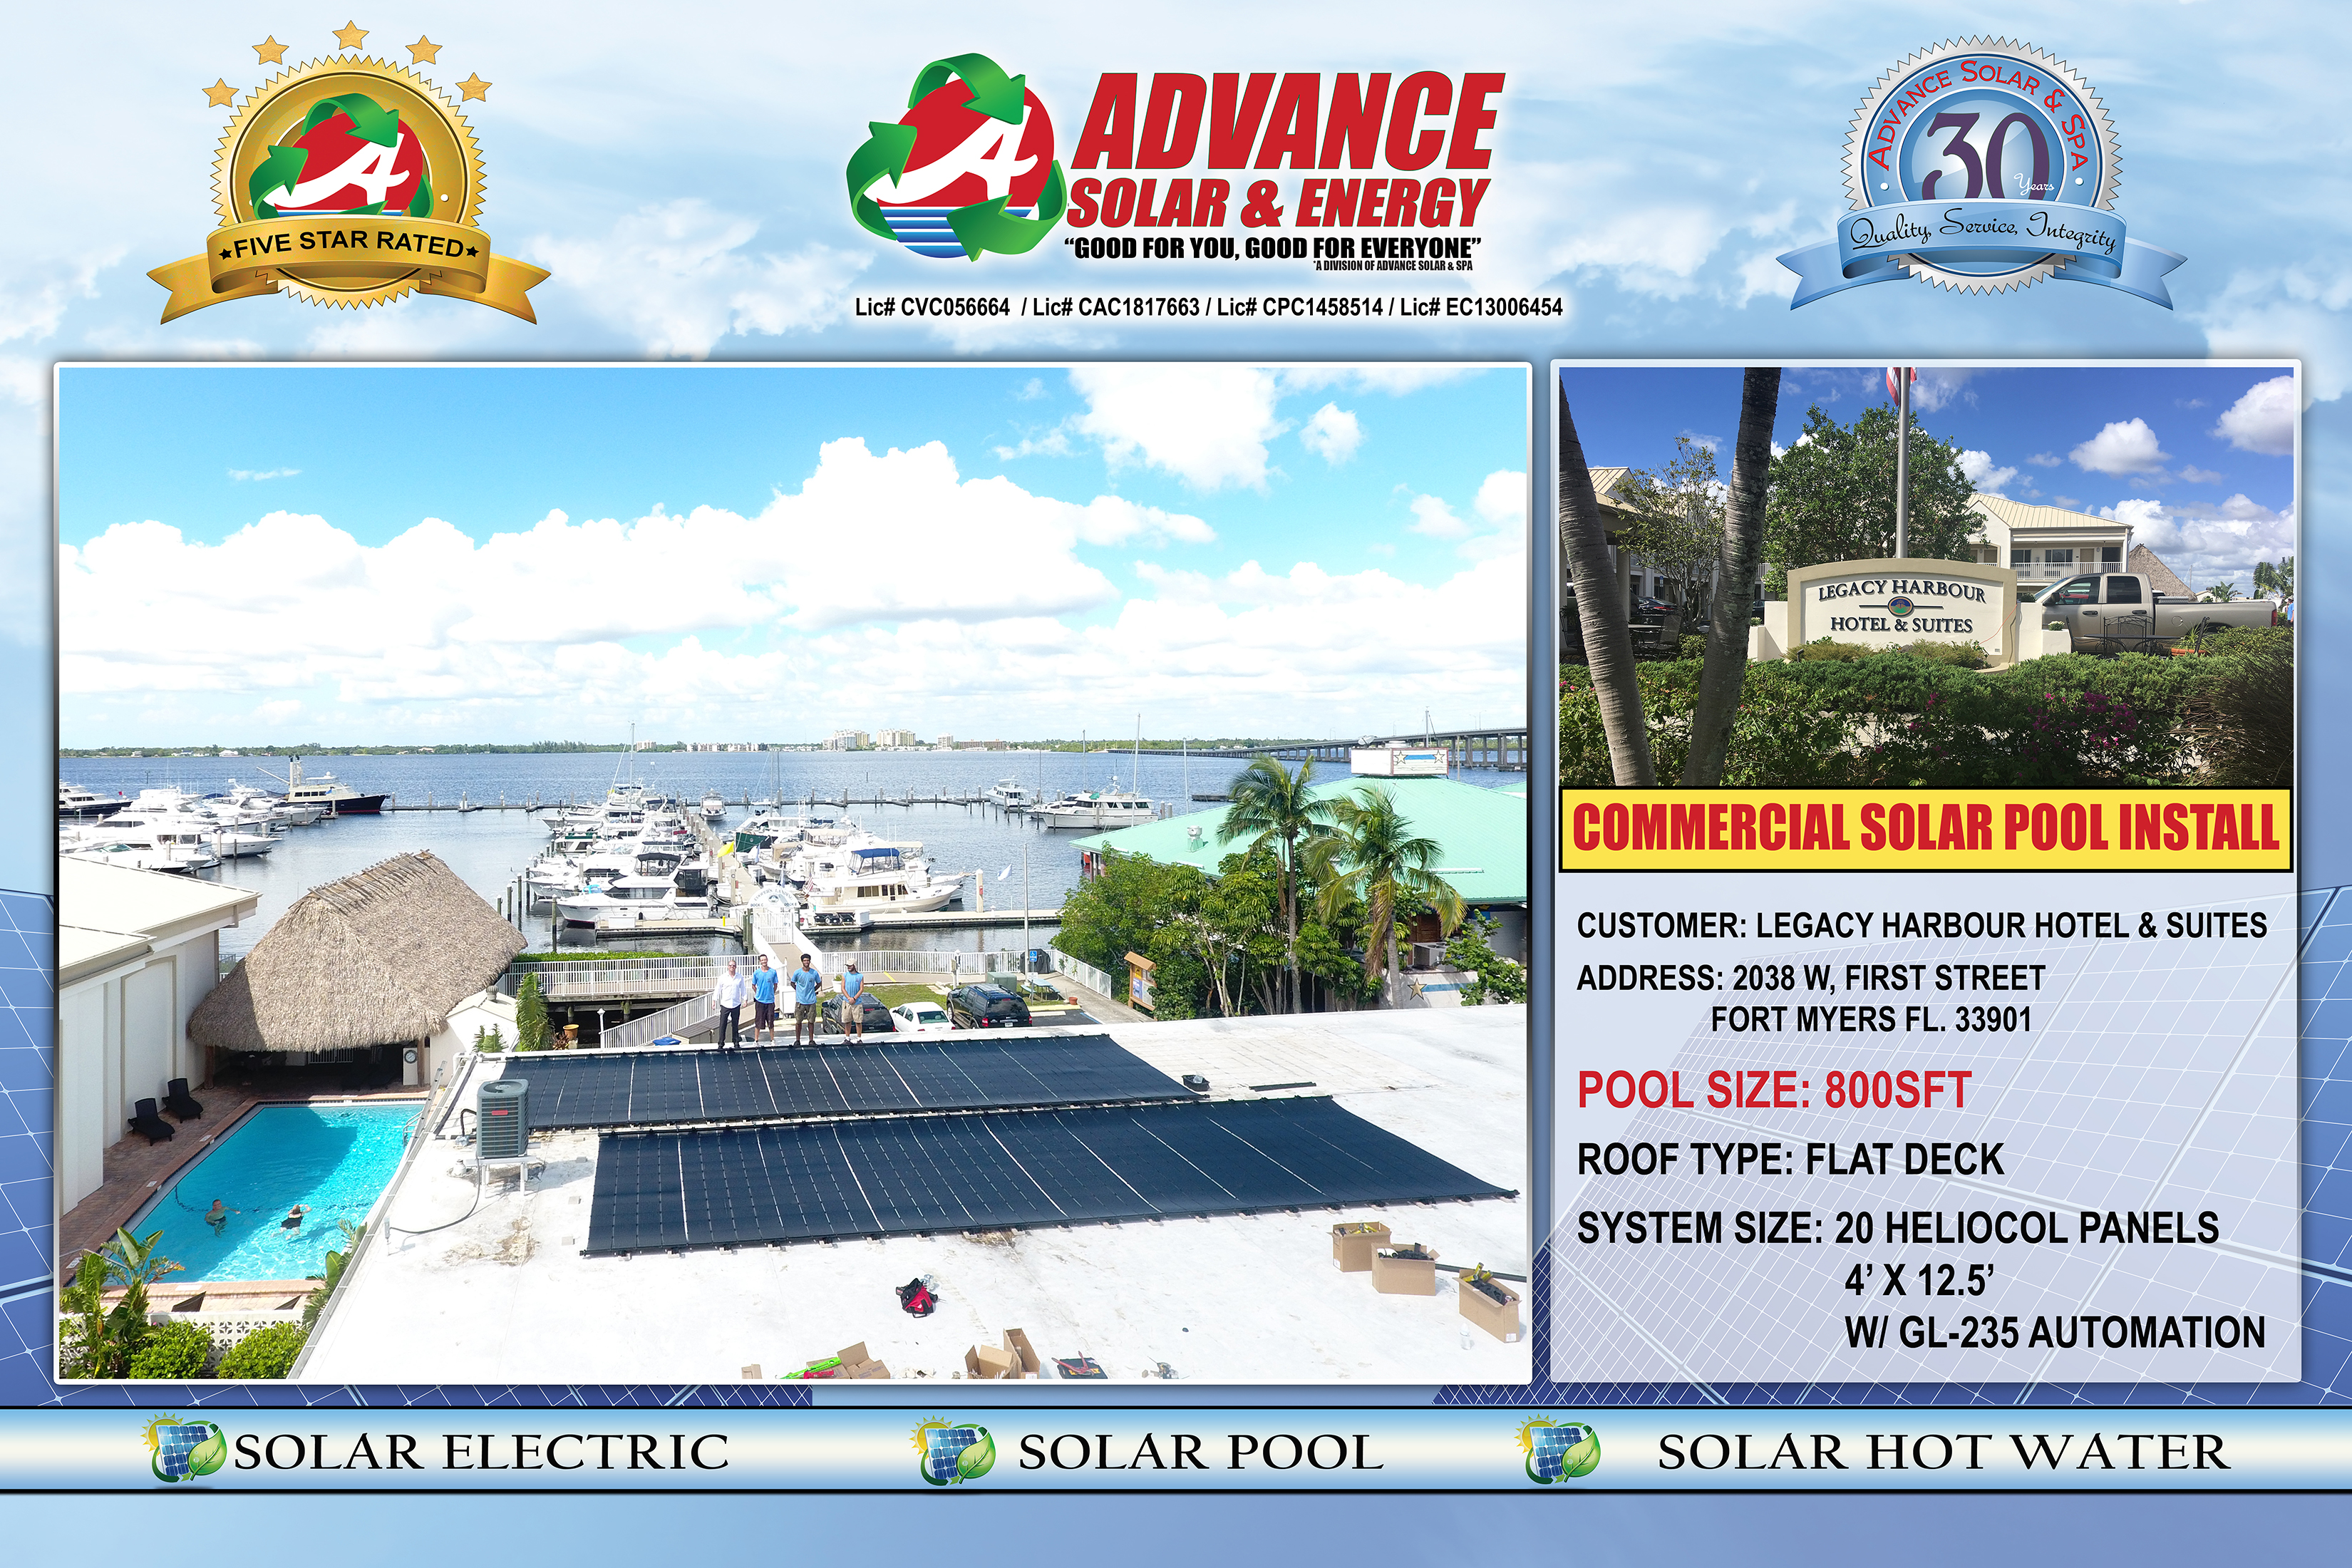 Advance Solar Energy Contractor Fort Myers Replacing A Pool Light From The Deck Electrical Online At We Have Been Providing Services Such As Heating Electric Hot Water And Other Spa Needs Since 1983